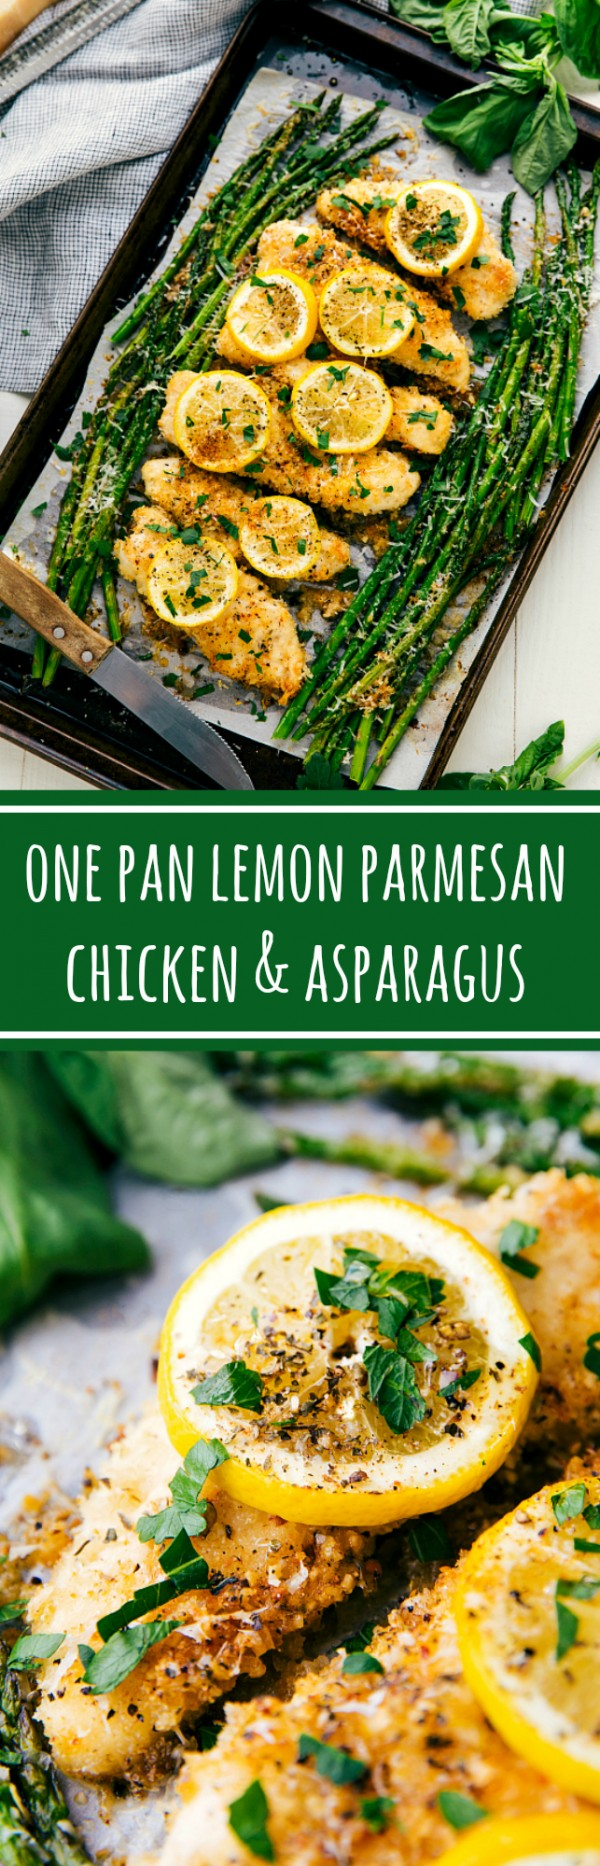 20 Unforgettable Chicken Recipes for a Romantic Dinner for Two - Get the recipe One Pan Lemon Parmesan Chicken and Asparagus @recipes_to_go